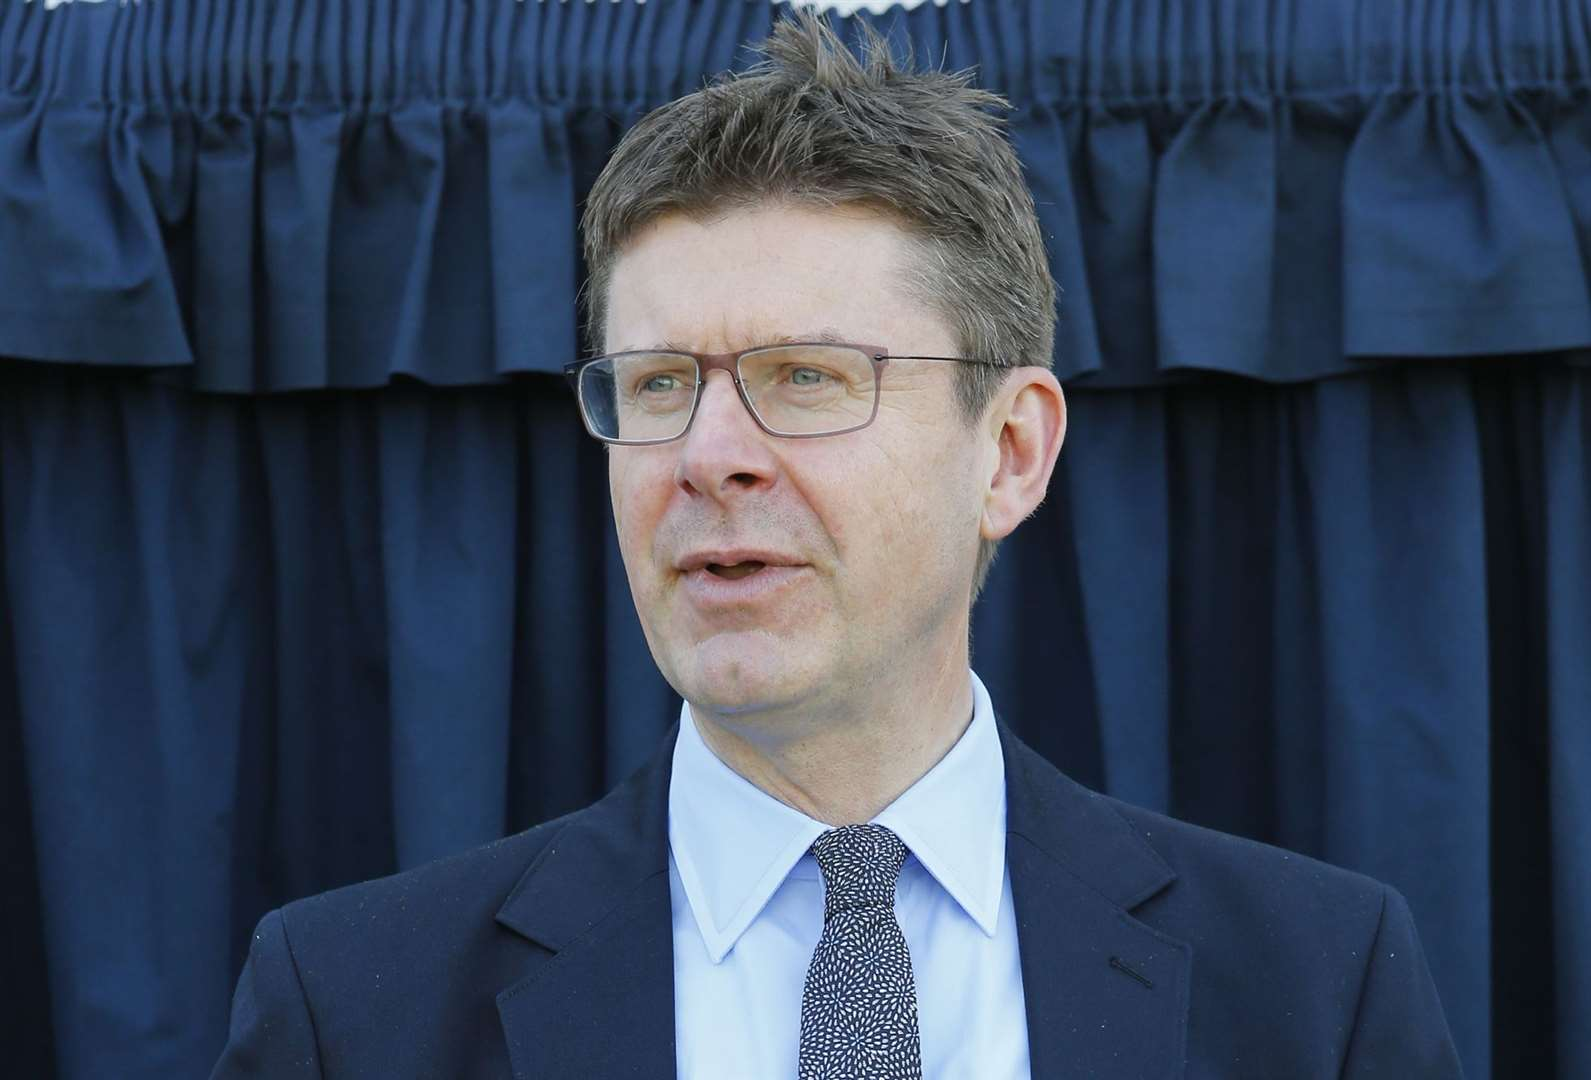 MP Greg Clark has defended his decision to abstain in a key Brexit vote